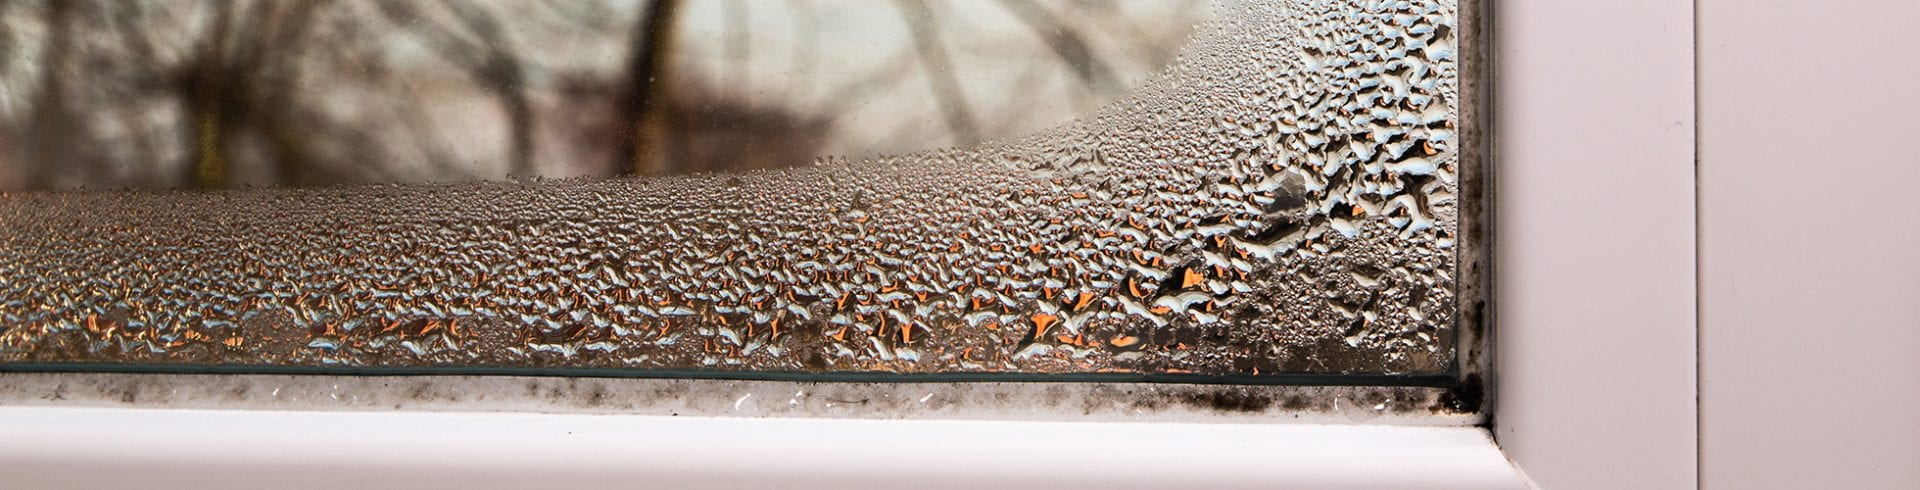 How Moisture Enters Buildings & Causes Mold | Blog | Mold Off®